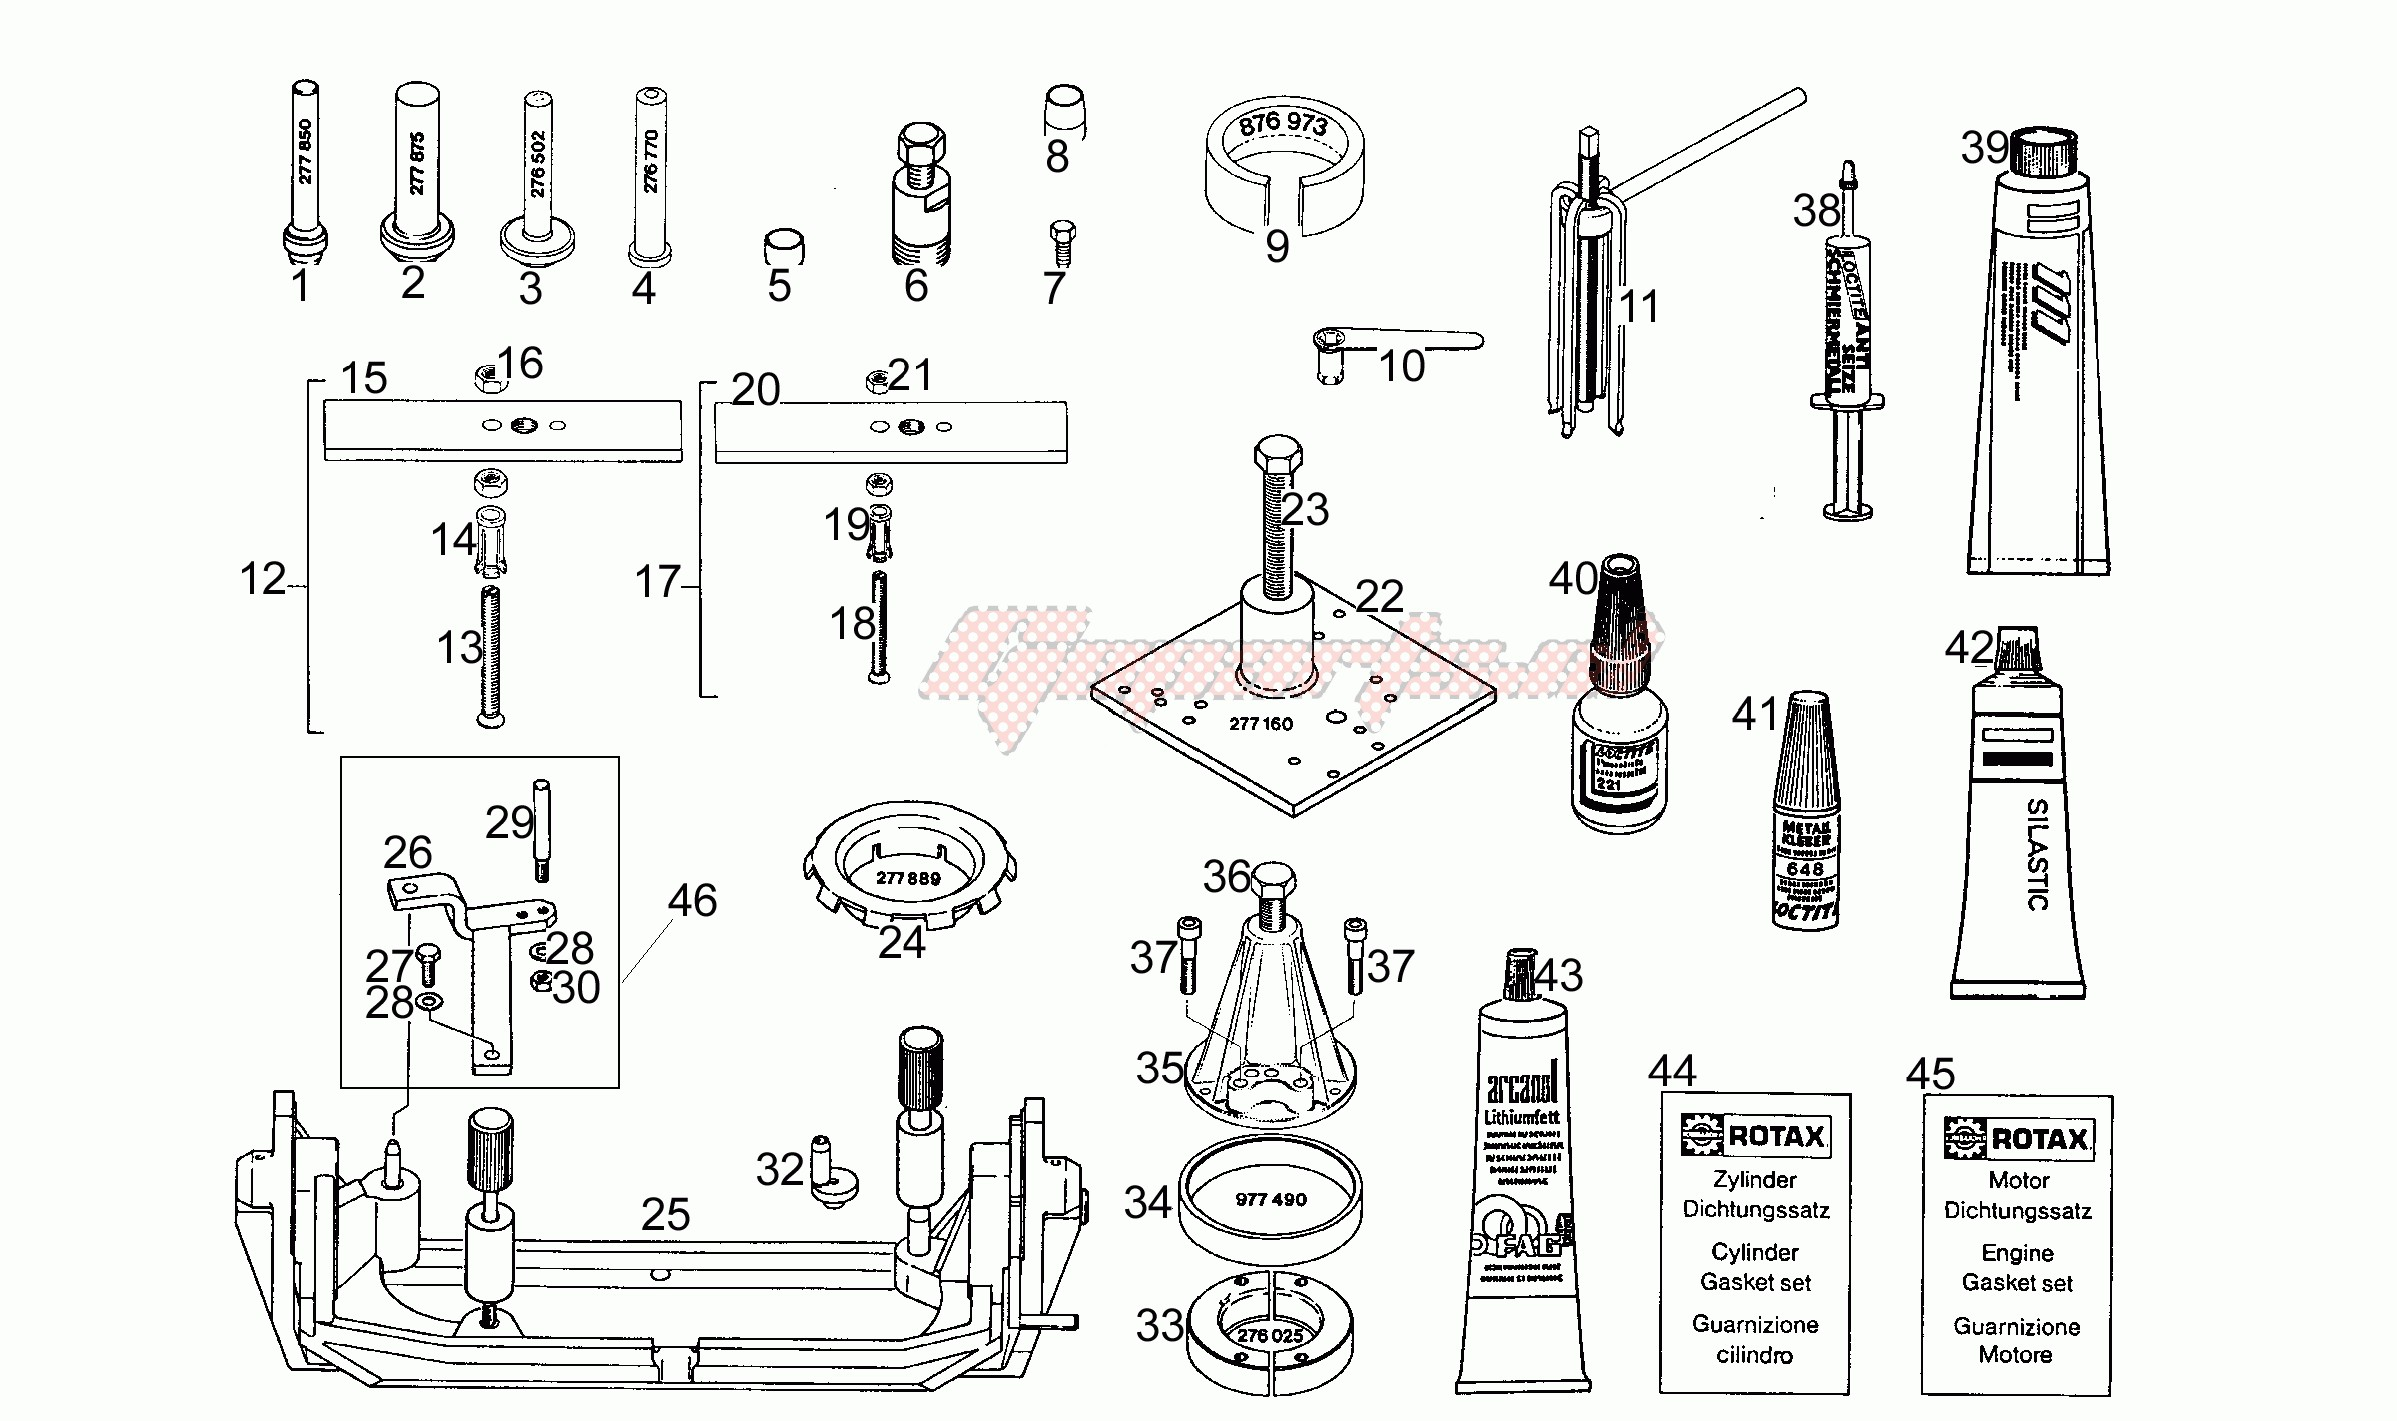 Special tools image